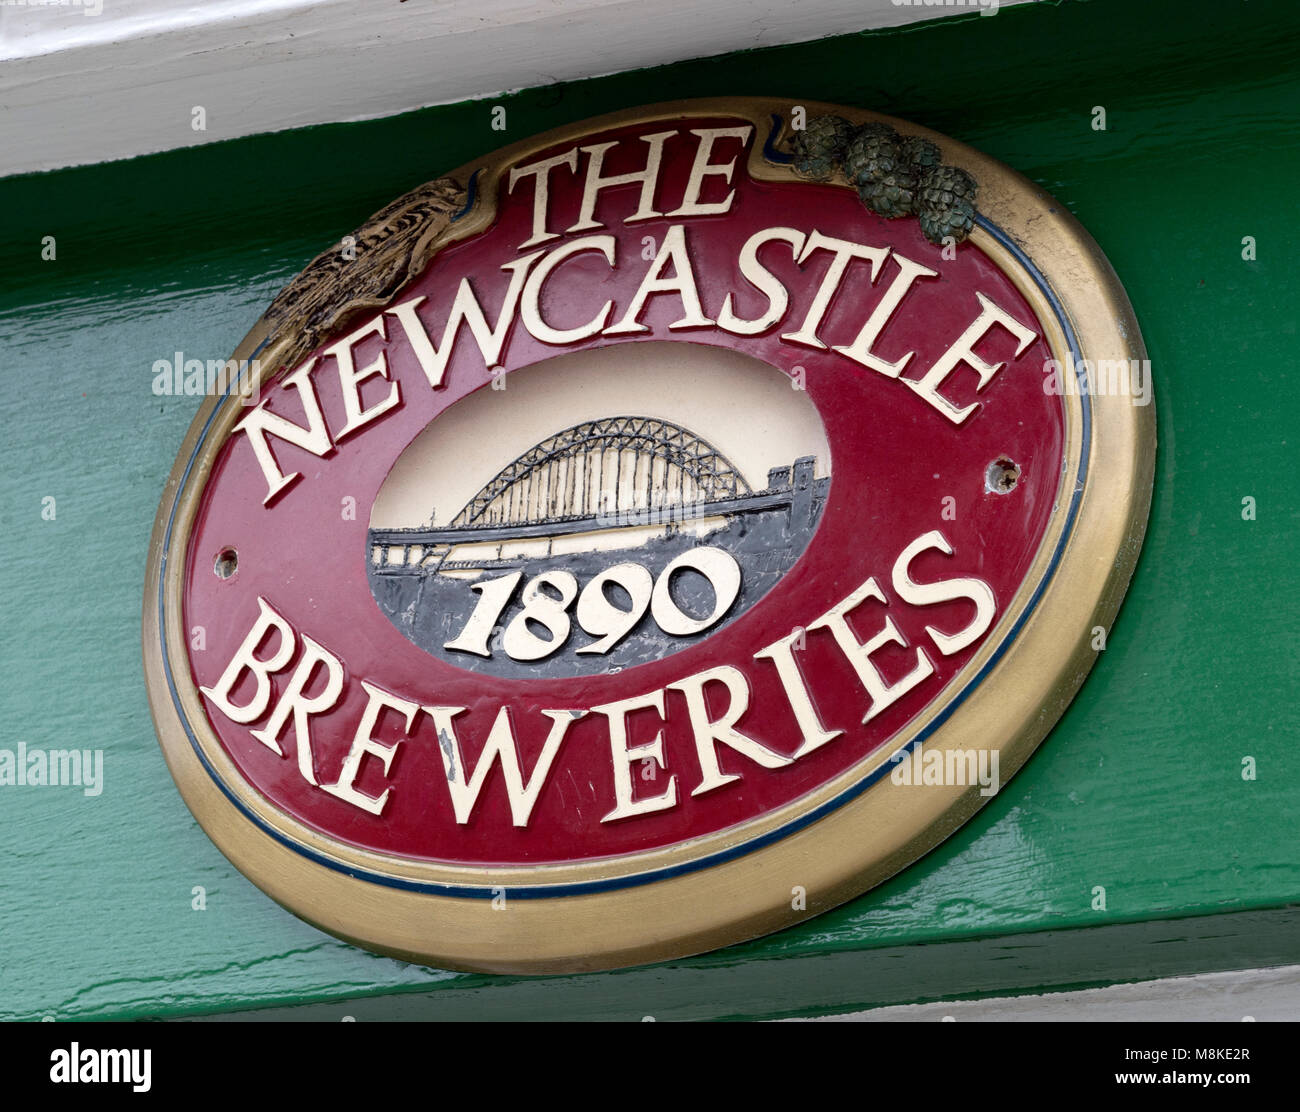 Plaque advertising The Newcastle Breweries Ltd. - Stock Image